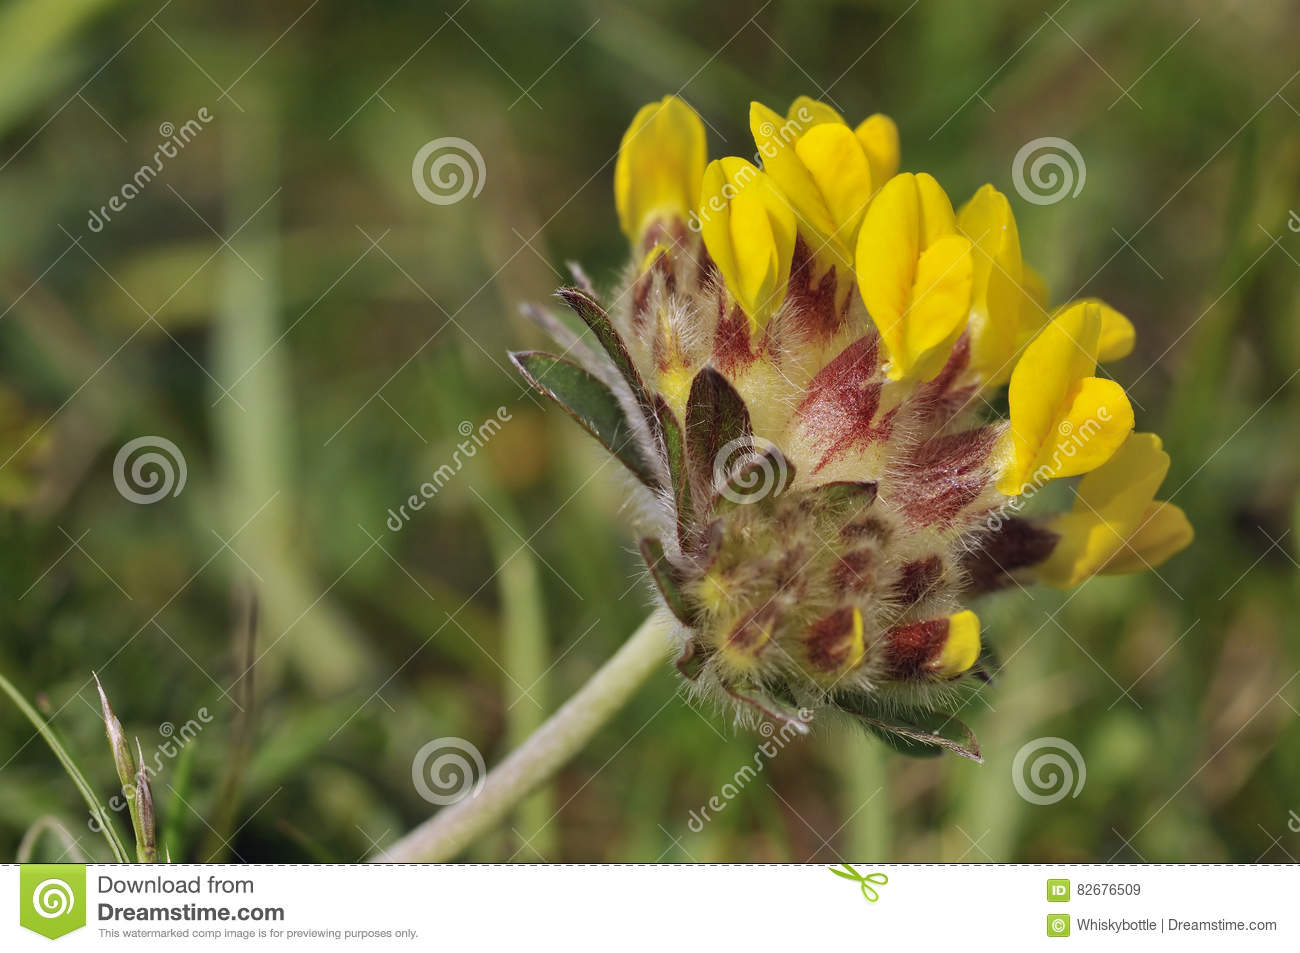 Kidney vetch stock image image of flower wildflower 82676509 kidney vetch anthyllis vulneraria yellow grassland flower mightylinksfo